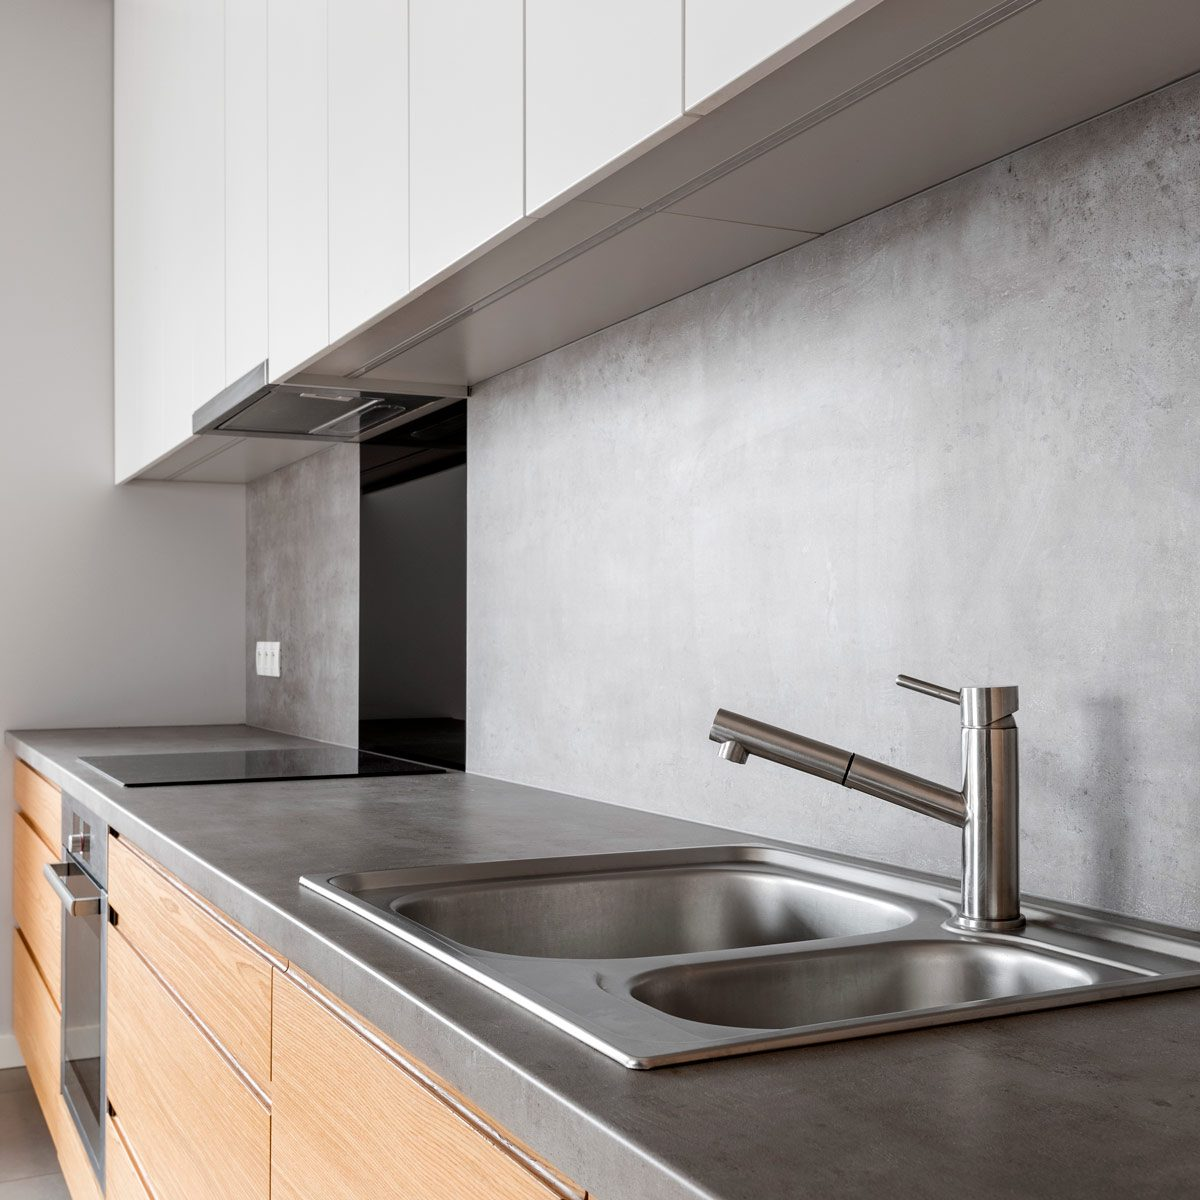 Concrete Countertops Pros And Cons